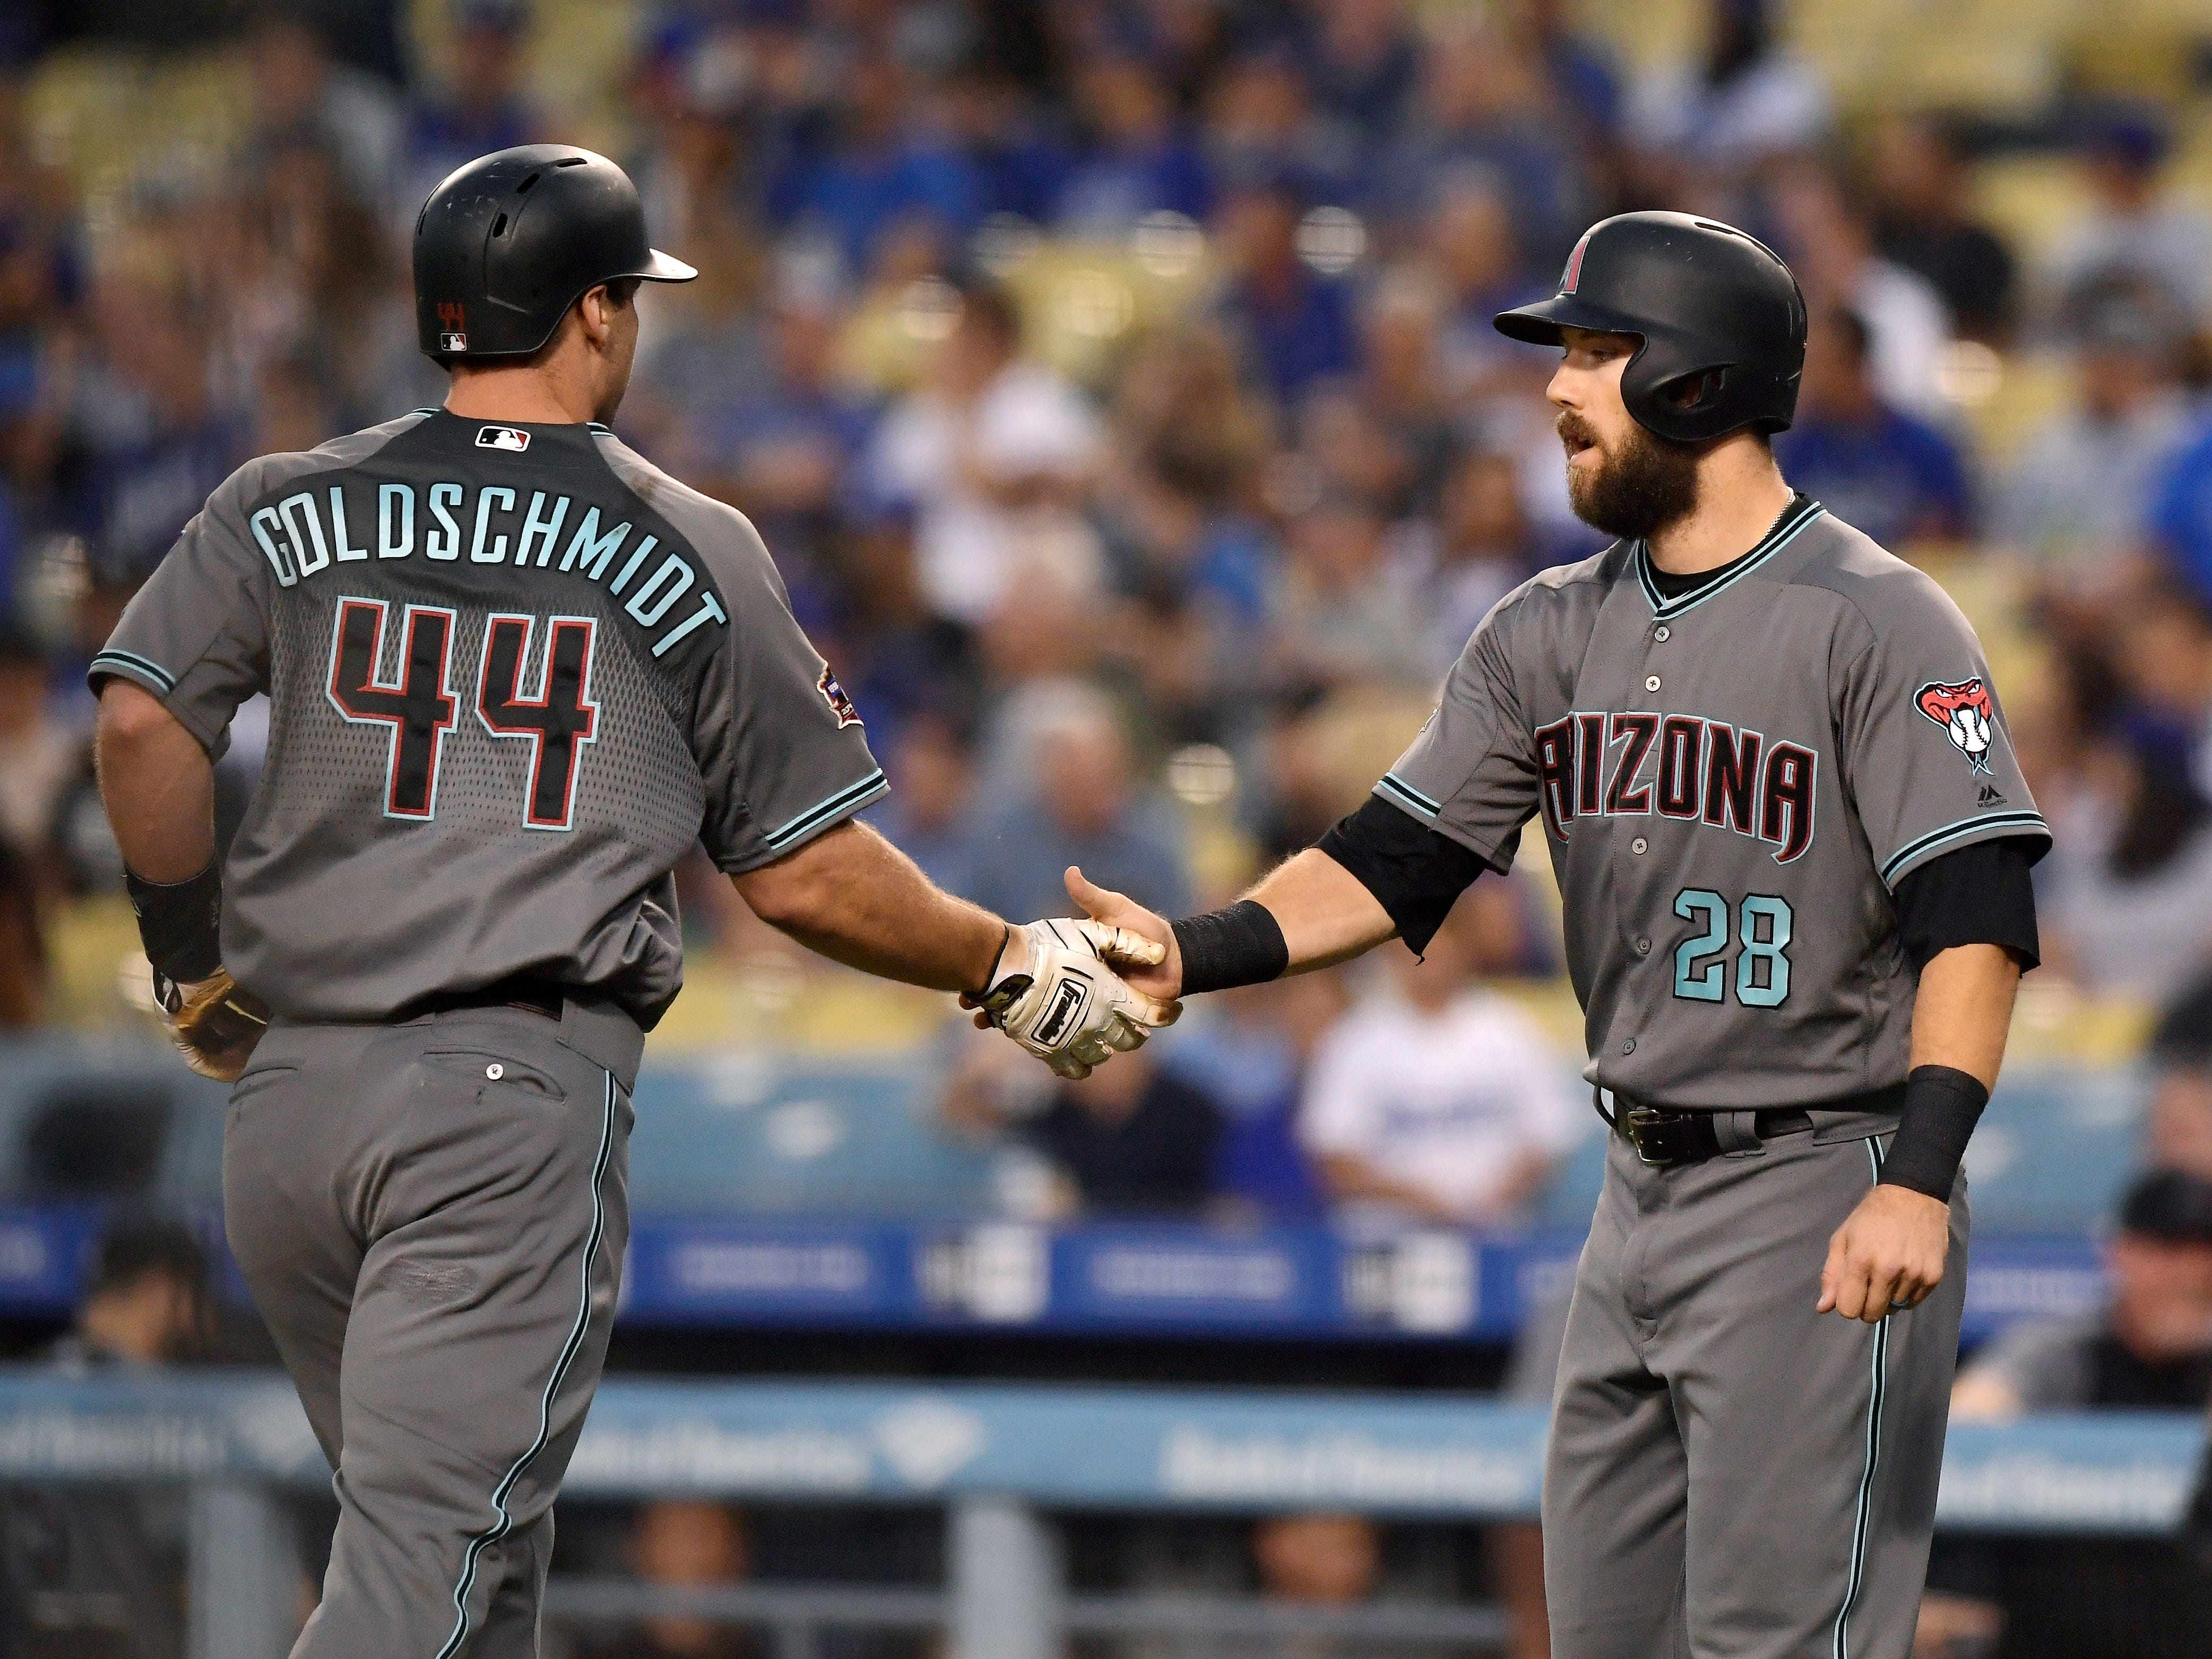 Arizona Diamondbacks' Paul Goldschmidt, left, is congratulated by Steven Souza Jr. after hitting a two-run home run during the first inning of a baseball game against the Los Angeles Dodgers, Friday, Aug. 31, 2018, in Los Angeles.